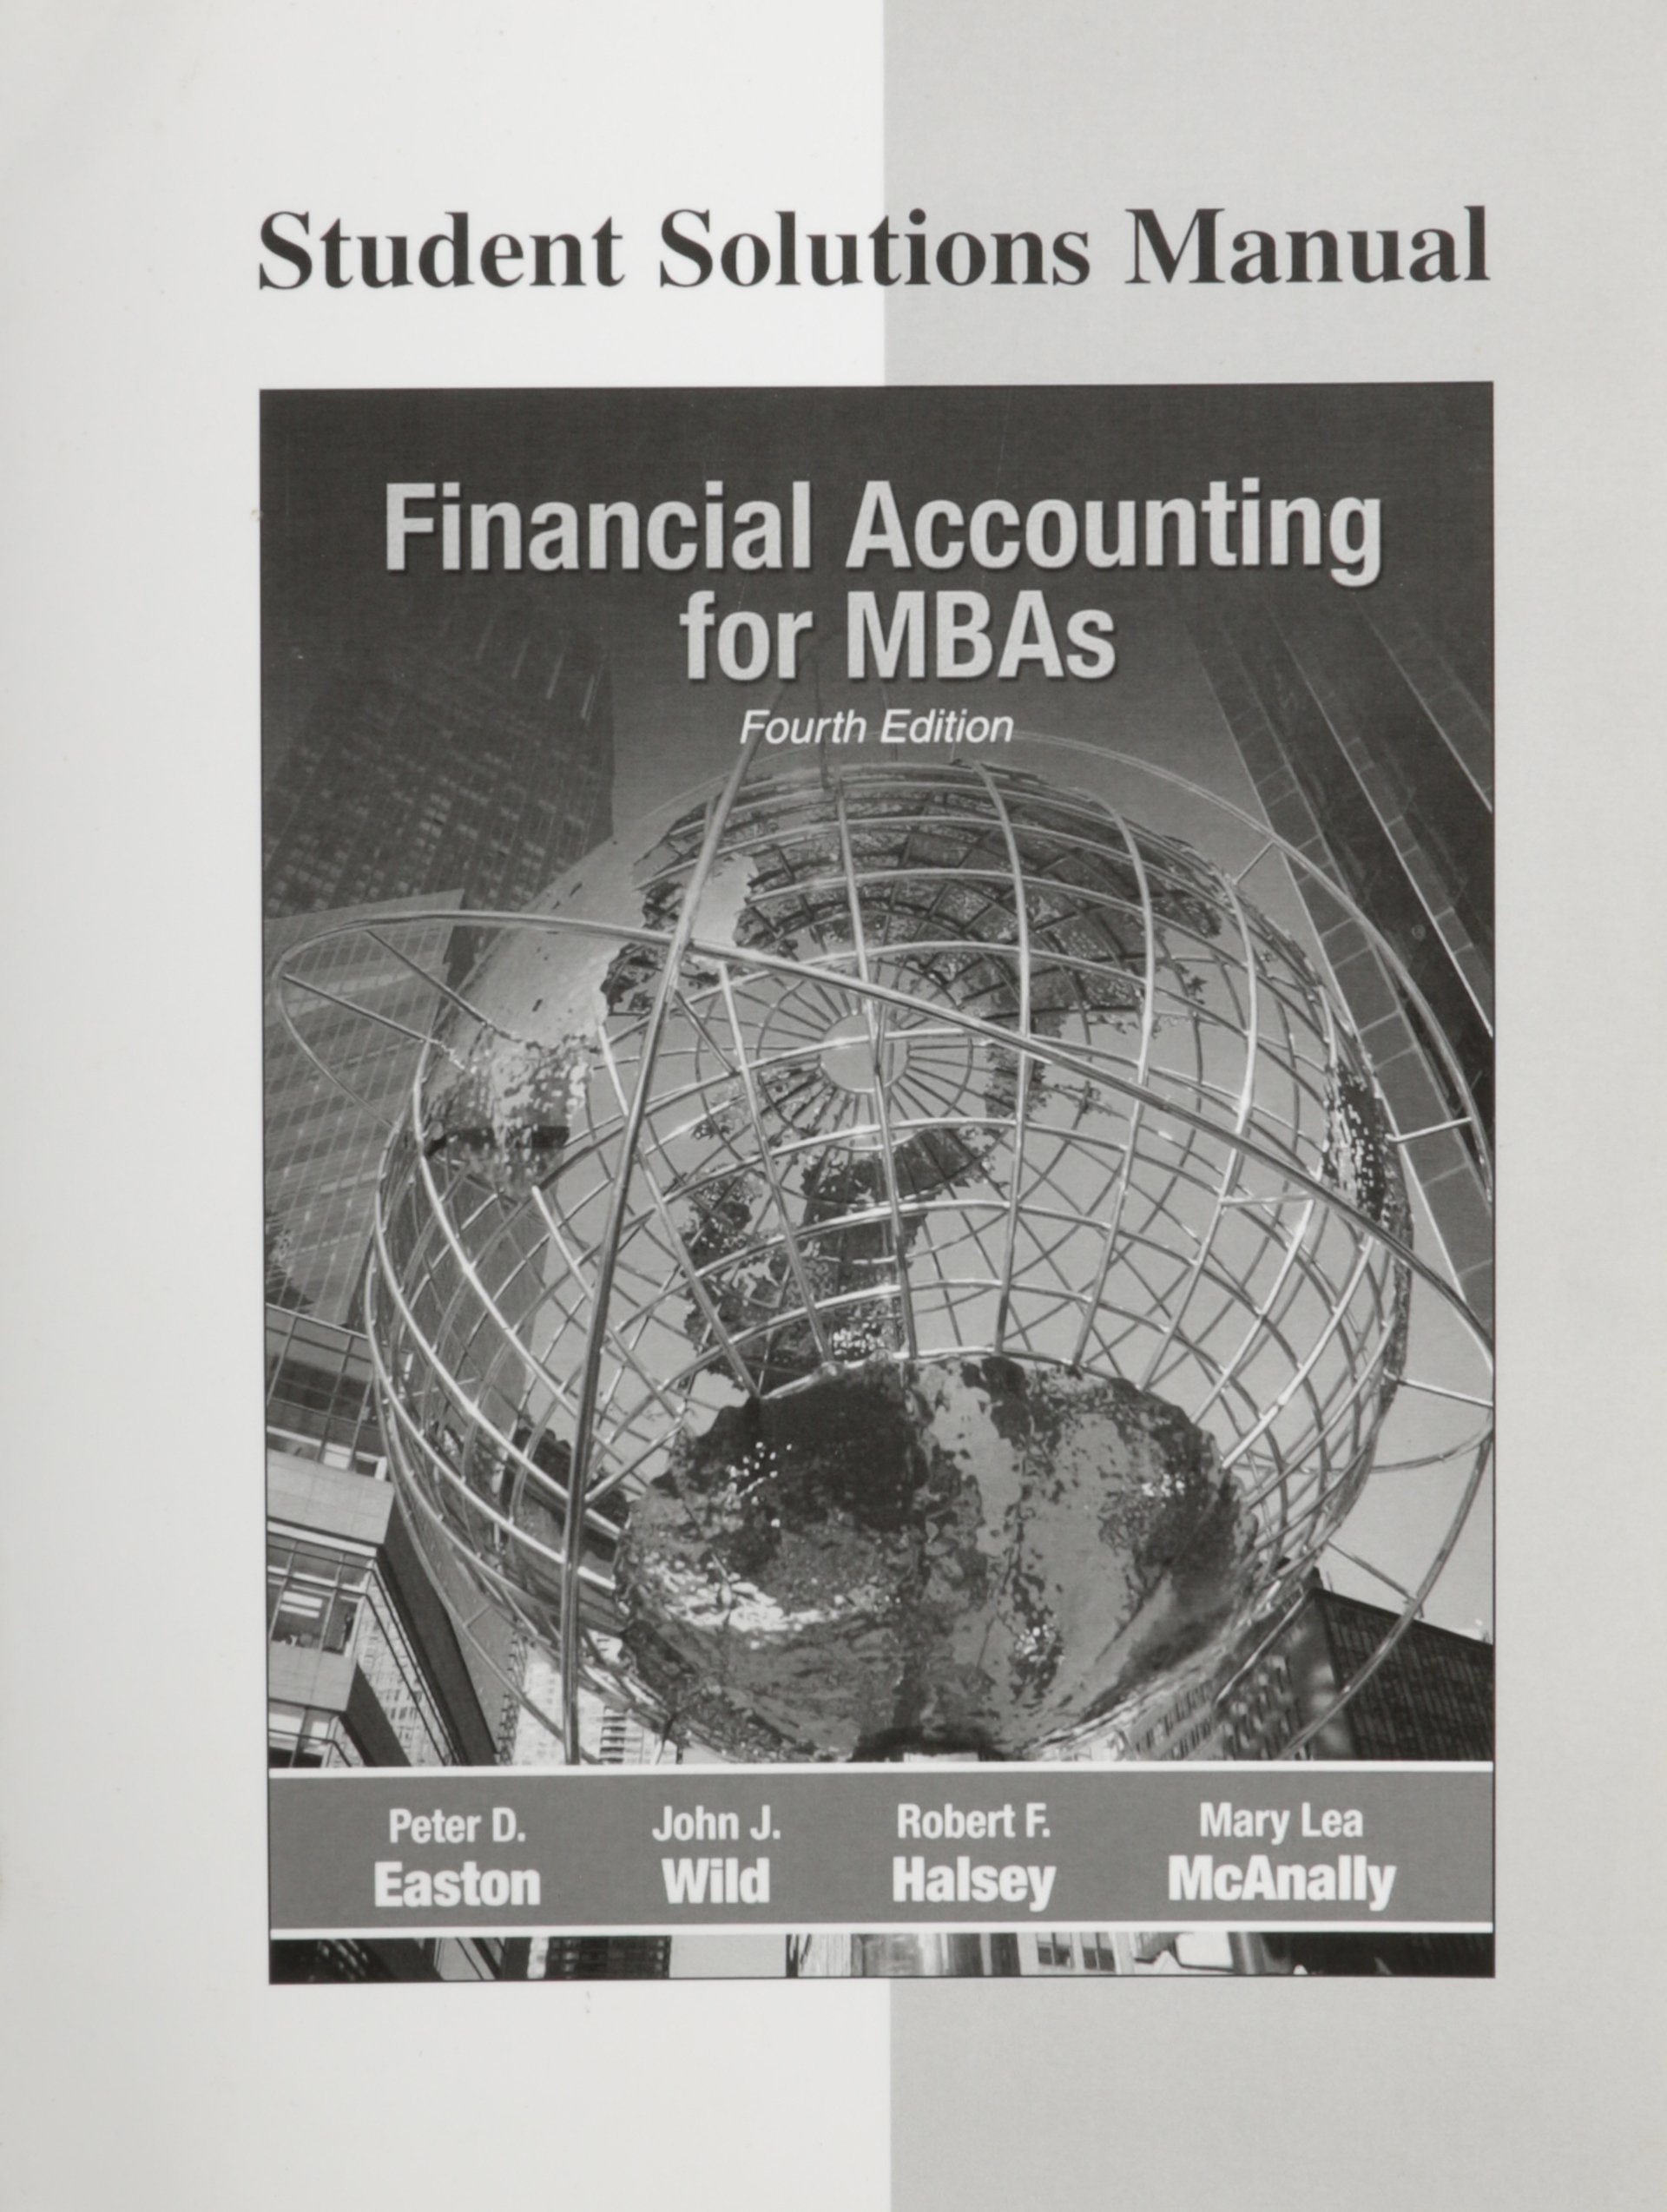 financial accounting for mbas student solution manual by peter d rh amazon com financial managerial accounting for mbas 5th edition solutions manual financial accounting for mbas 4th edition solutions manual